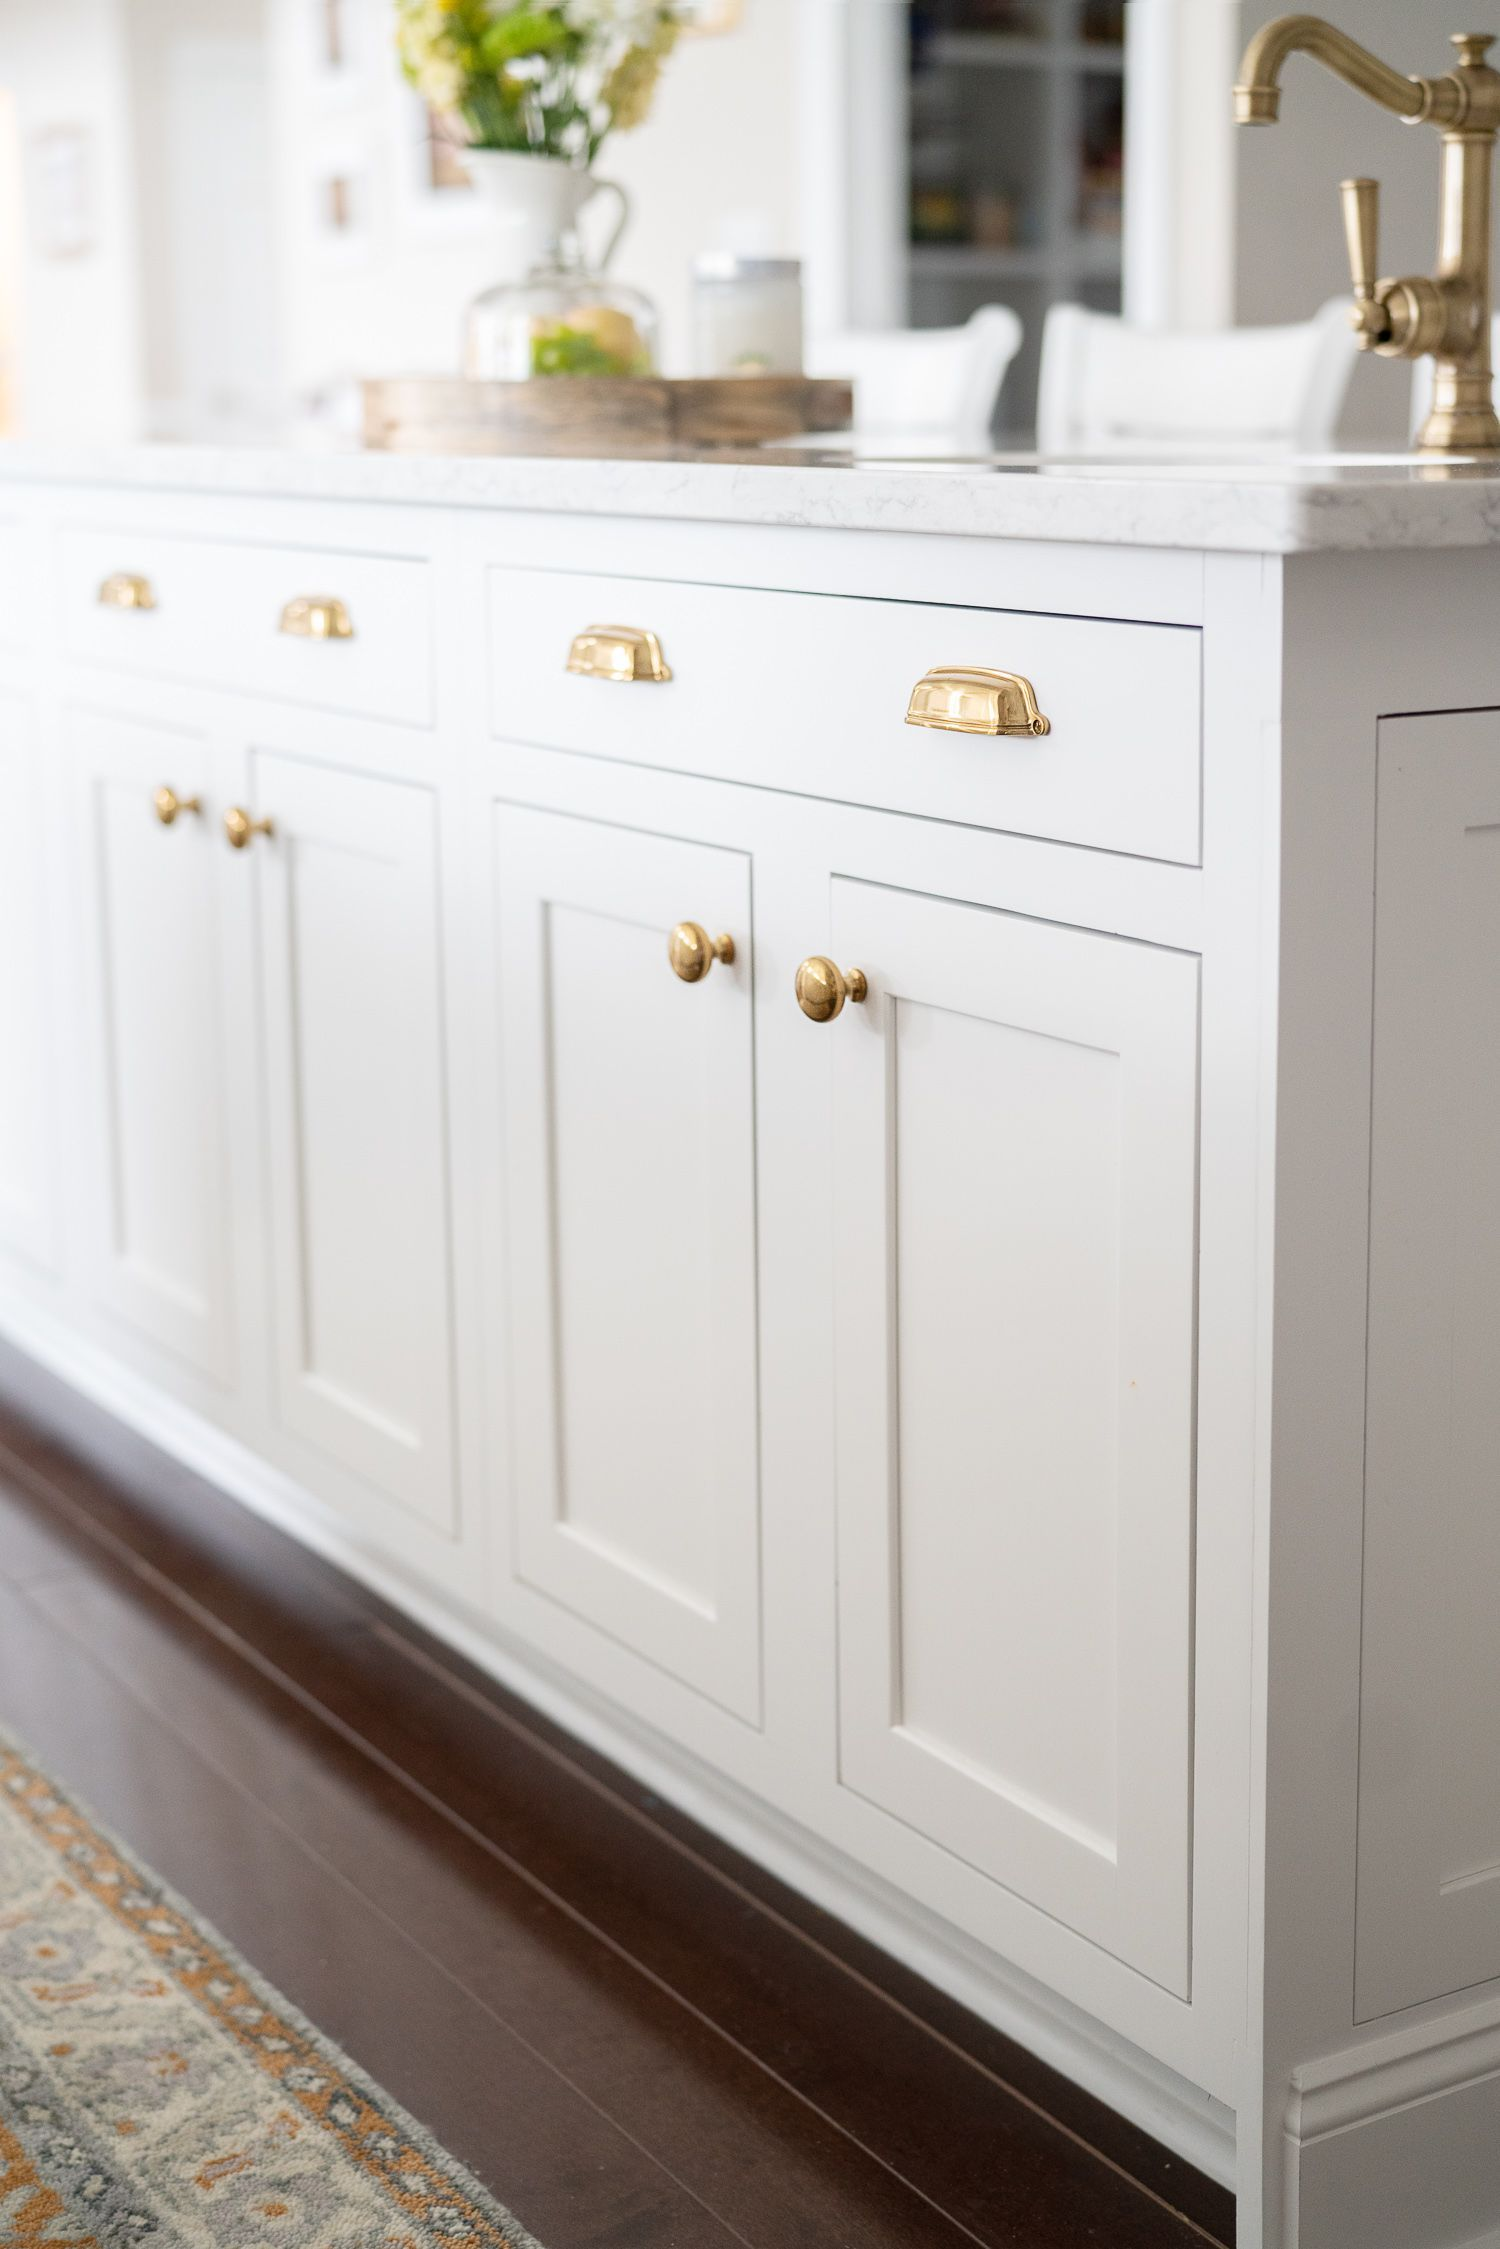 Inset Cabinets Classic Kitchen Cabinets Classic White Kitchen White Kitchen Kitchen Dec In 2020 Inset Cabinets Classic Kitchen Cabinets Inset Cabinetry